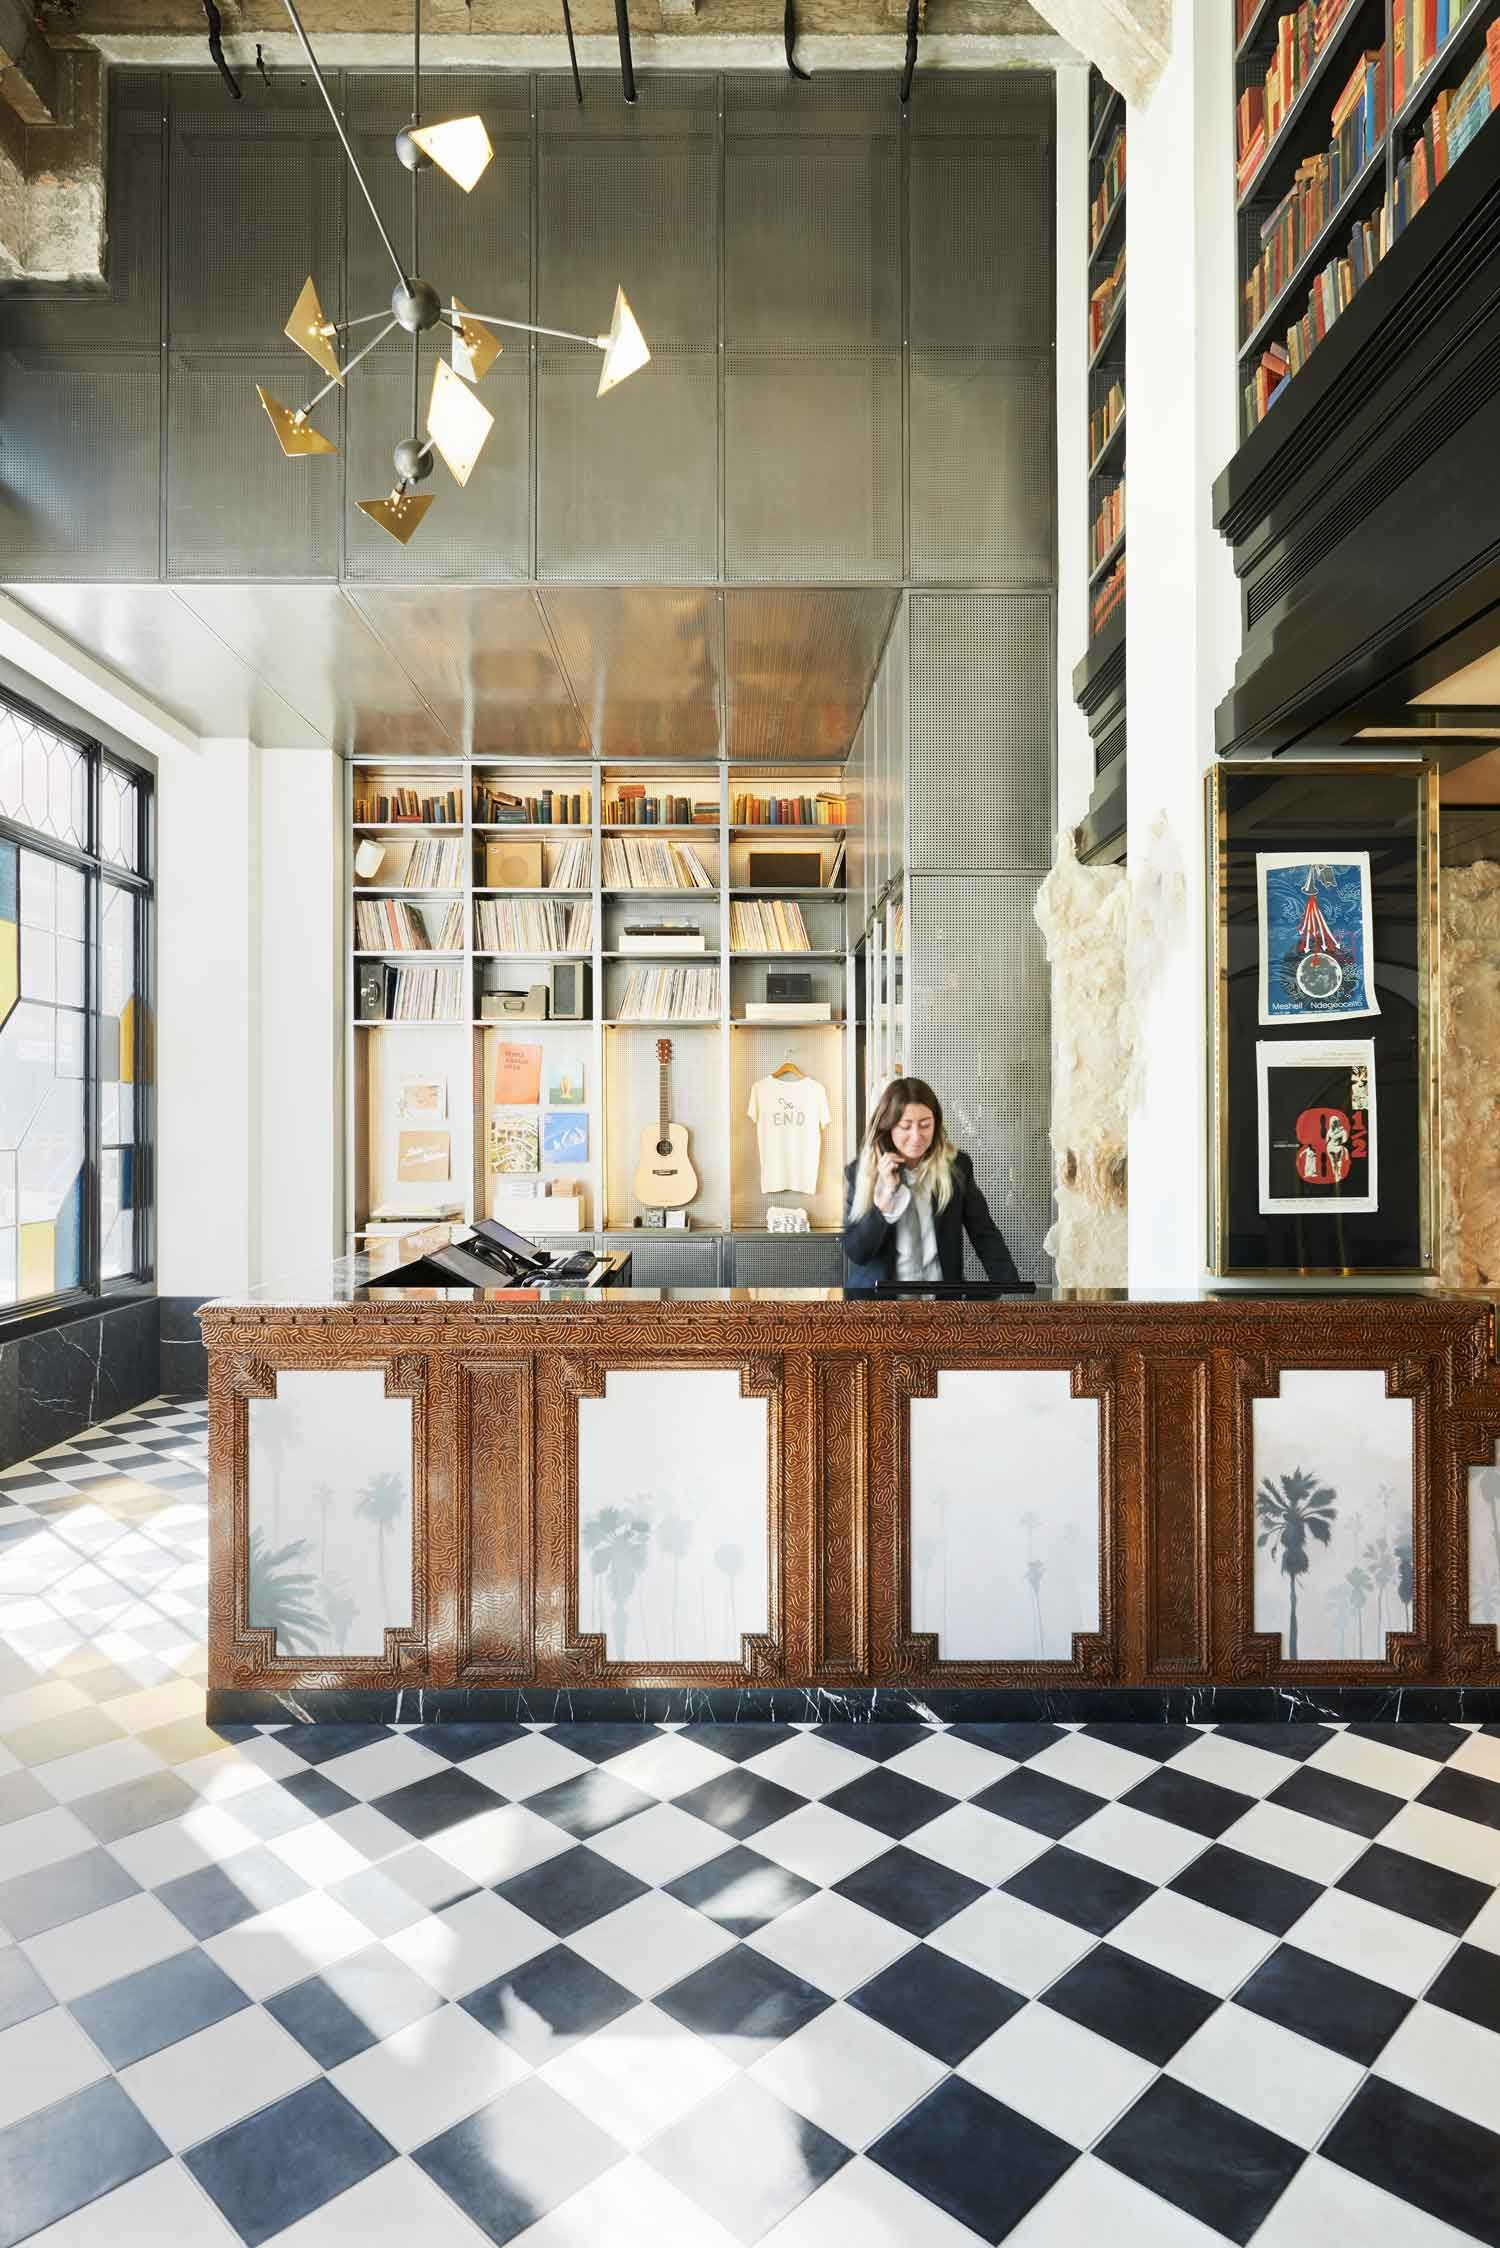 Ace Hotel Downtown La Yellowtrace Hospitality Design Cafe Restaurant